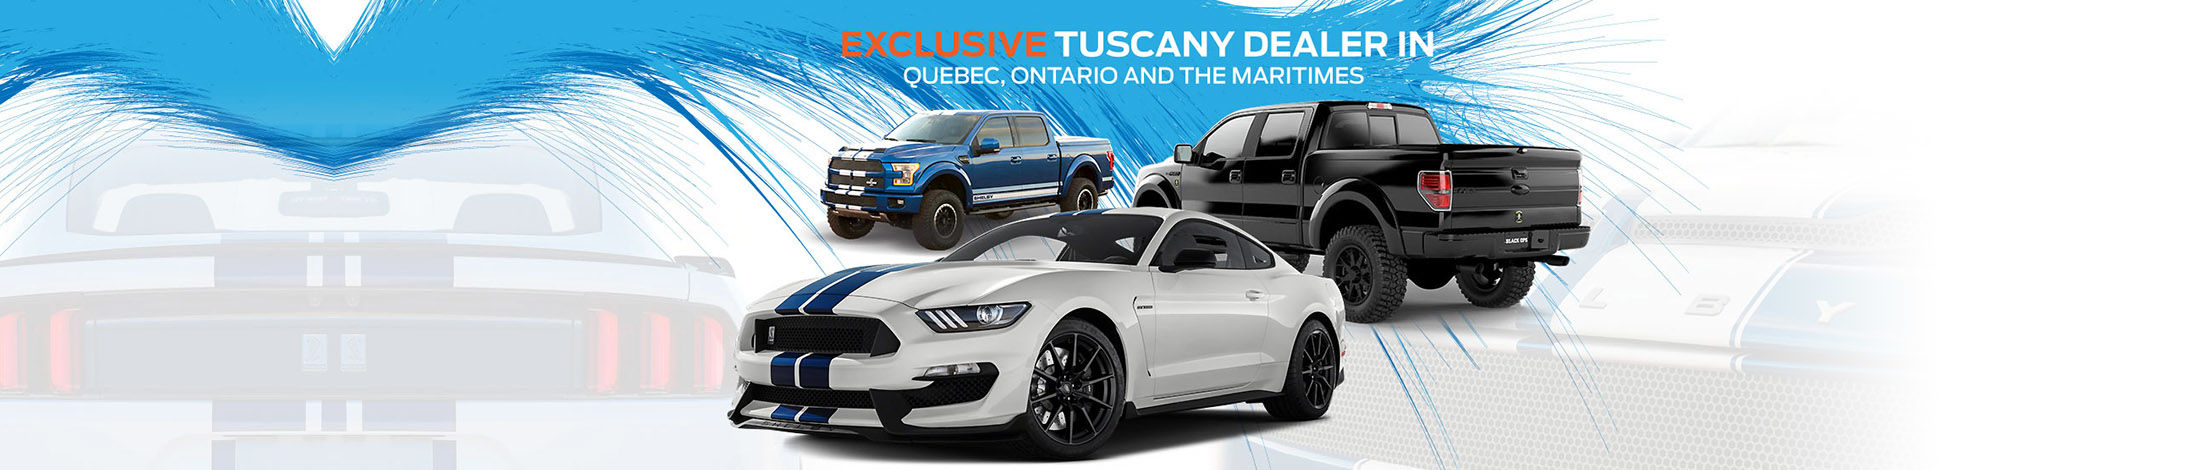 Exclusive Tuscany Dealer in